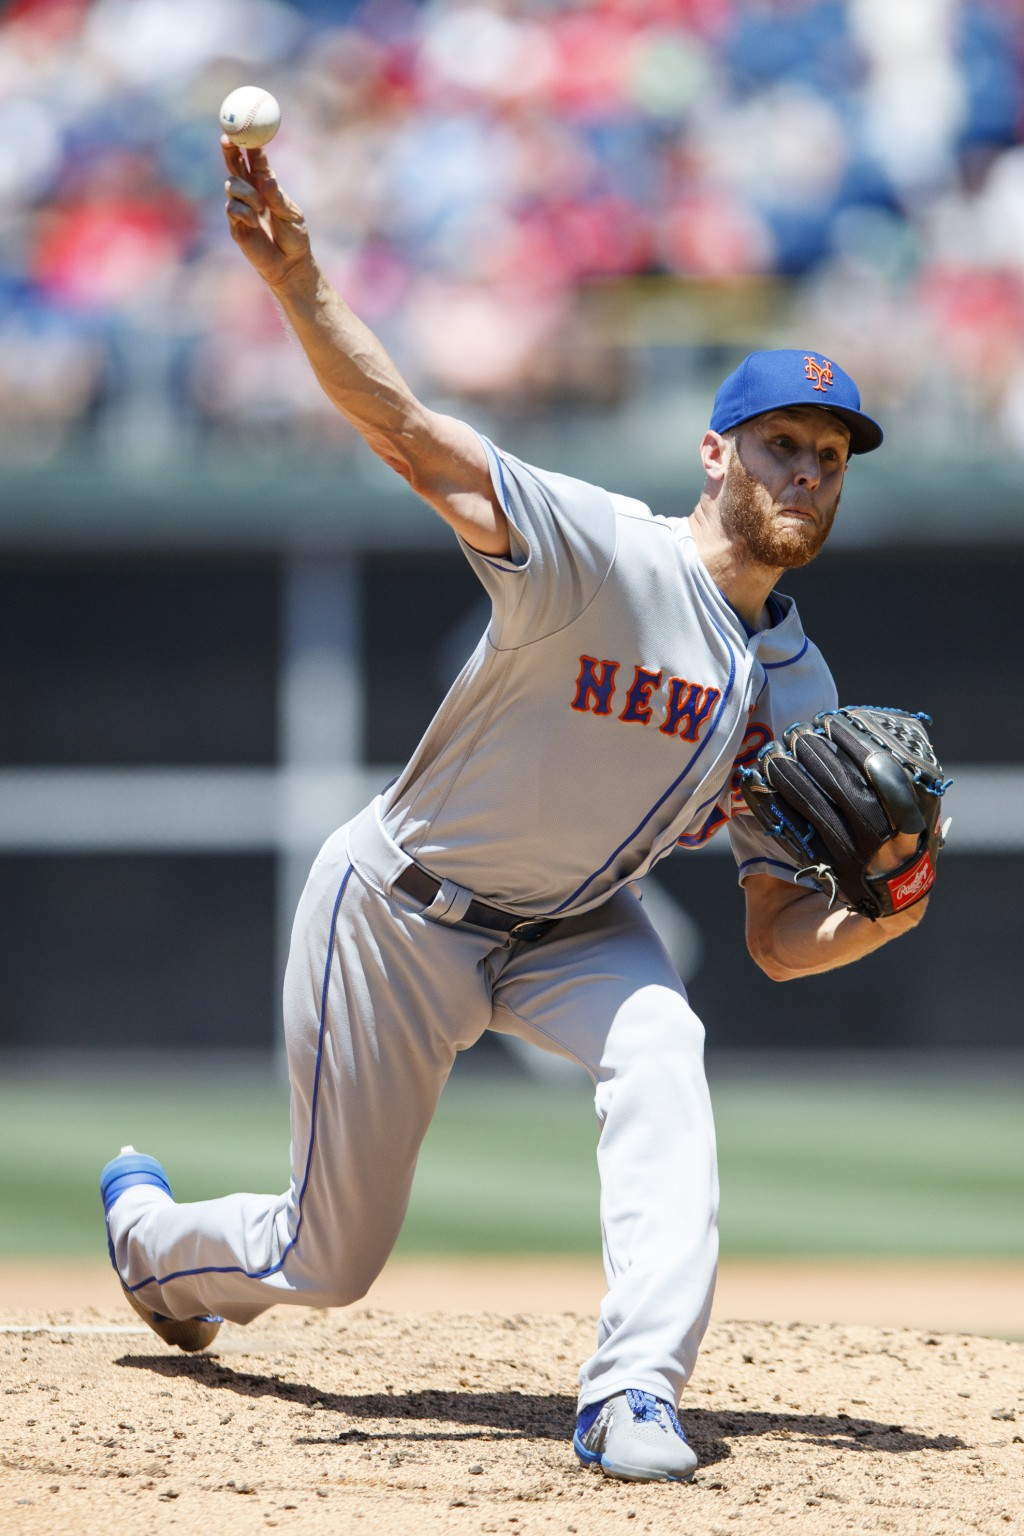 New York Mets' Zack Wheeler pitches during the third inning of a baseball game against the Philadelphia Phillies, Thursday, June 27, 2019, in Philadel...